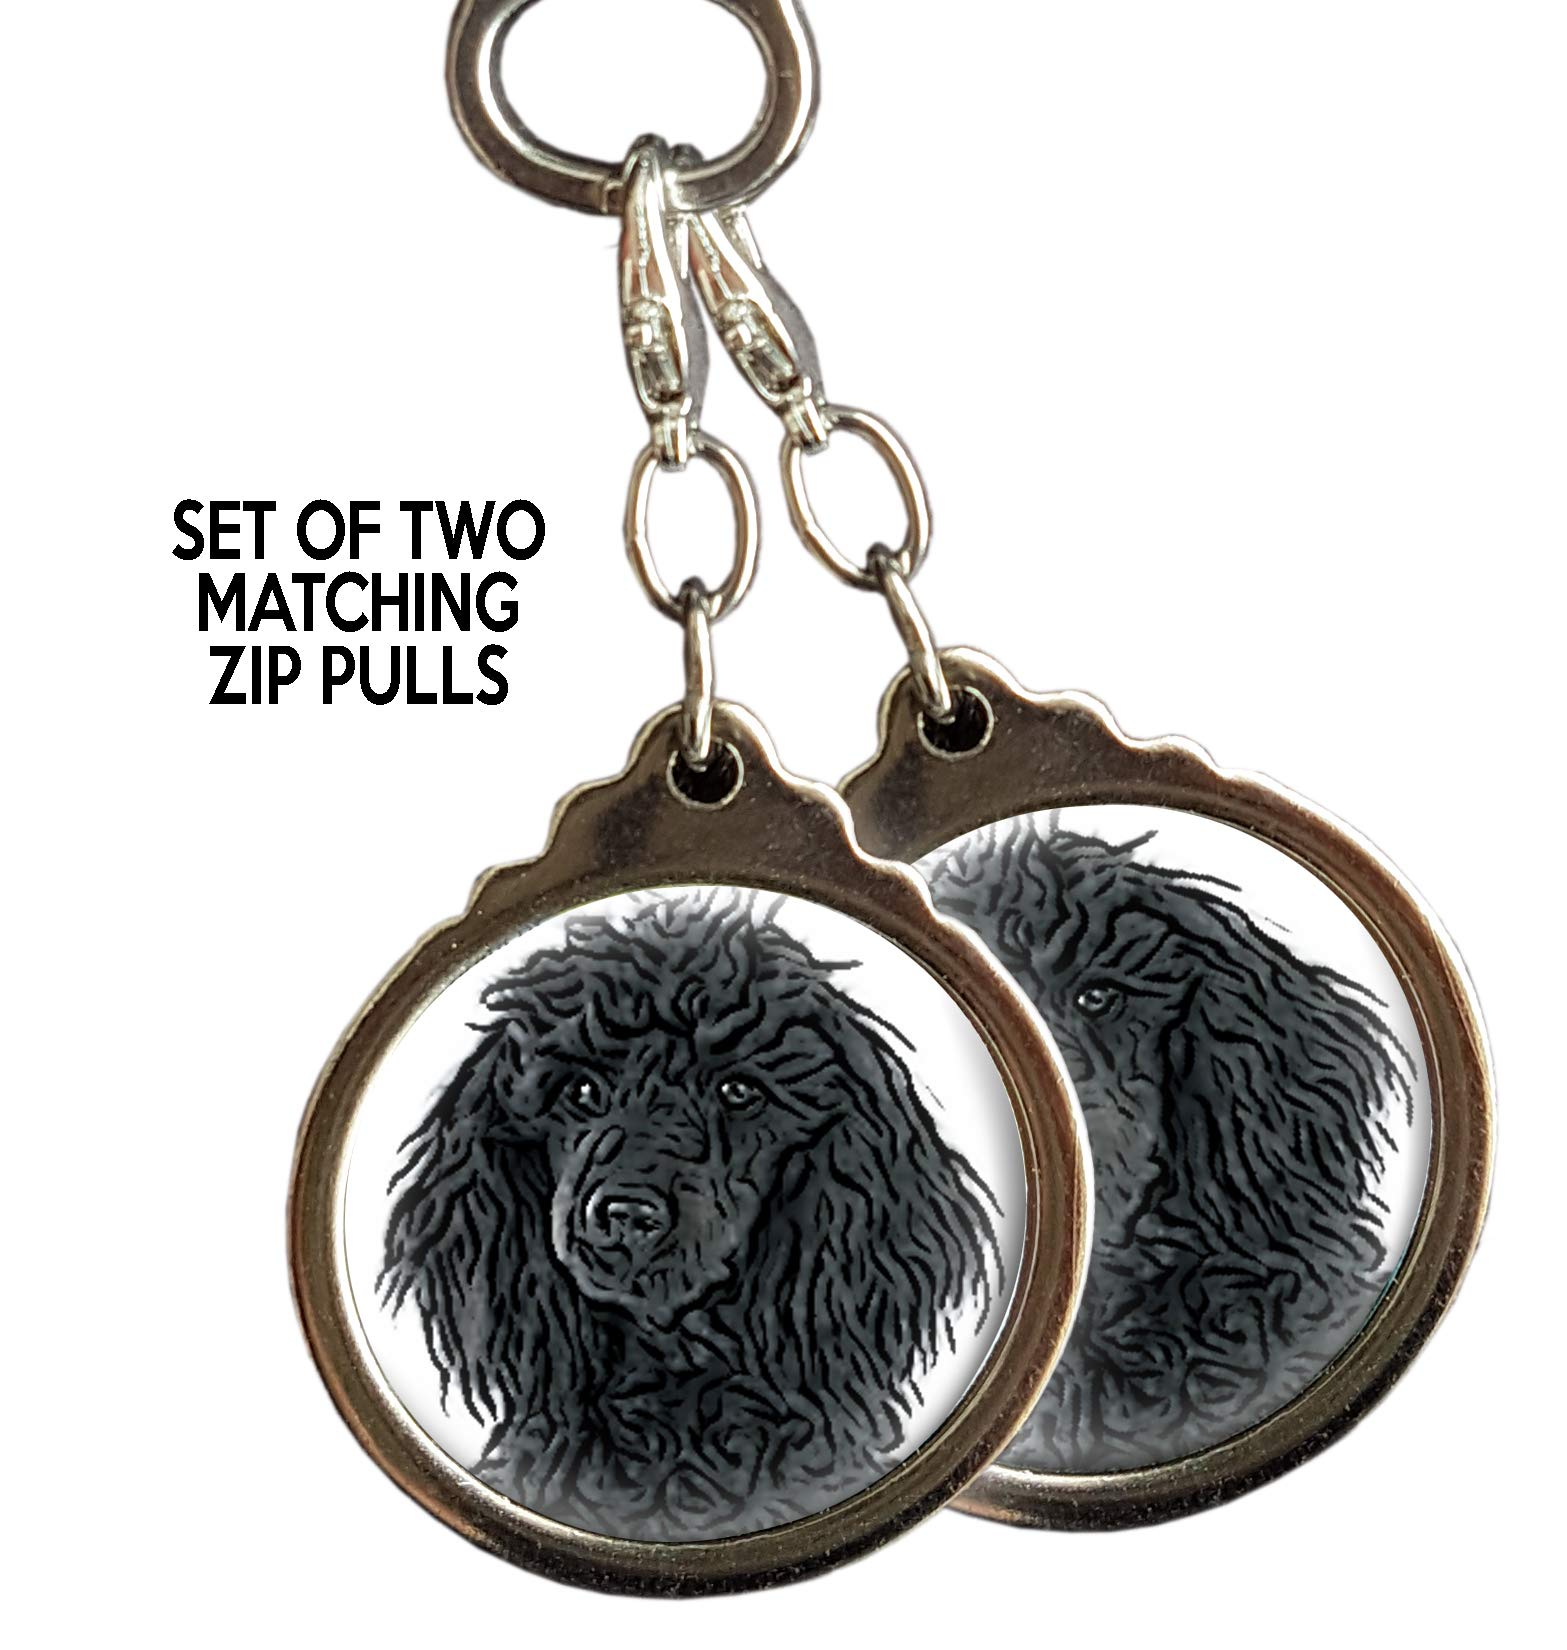 Black Poodle Dog Zip PULLS. Set of Two Matching Zip pulls or Bag Tags. Puppy Dog Pet Gift.